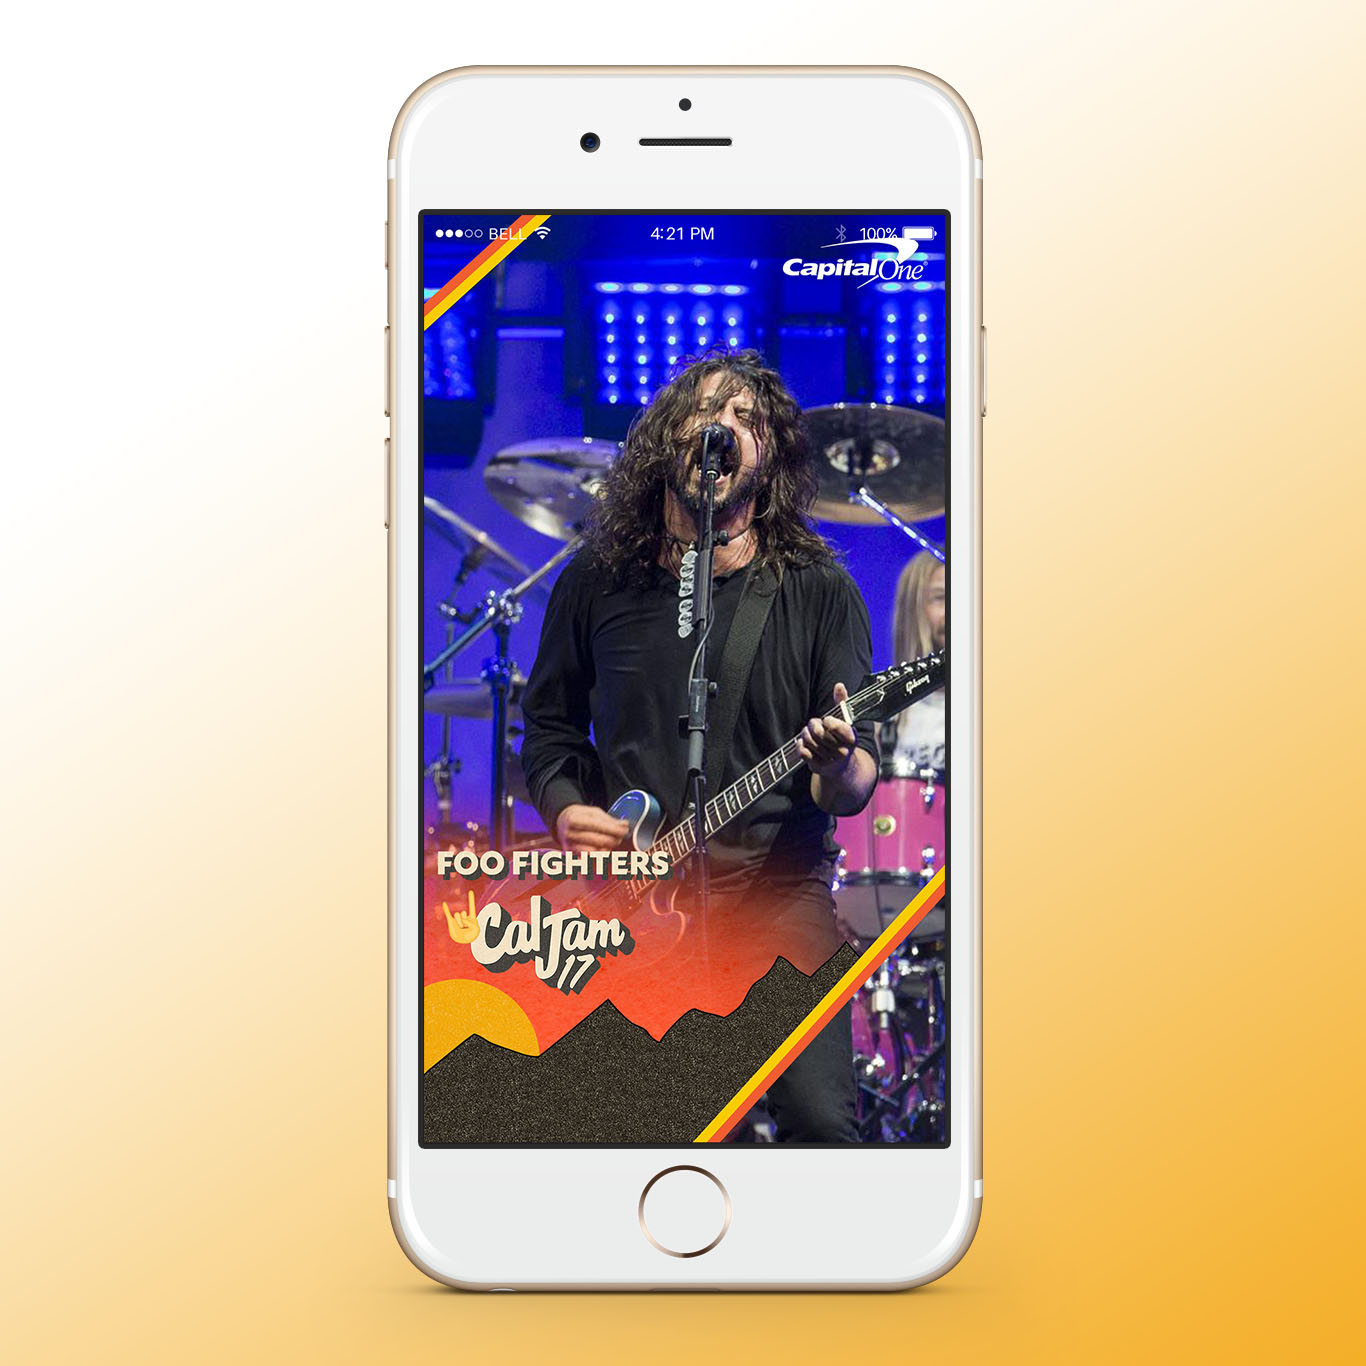 CalJam Snapchat Filters - Concept 2